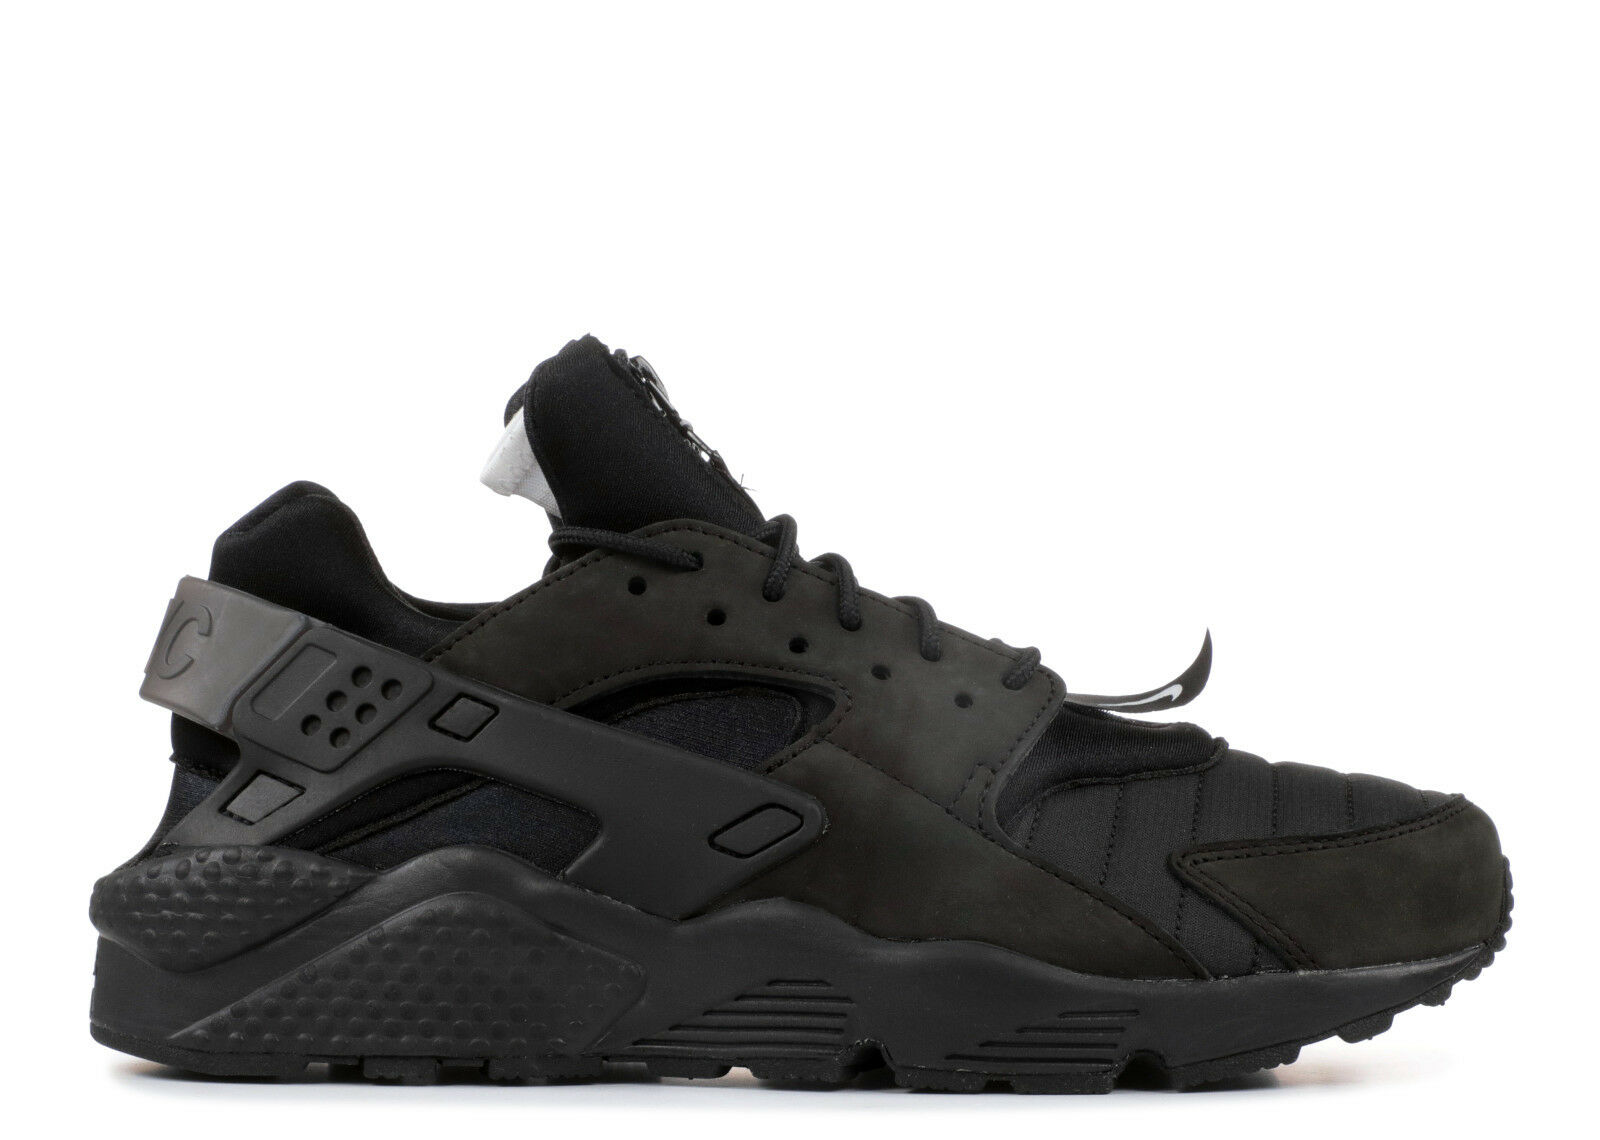 Brand New Nike Air Huarache Run QS Men's Athletic Fashion Sneakers Price reduction  best-selling model of the brand